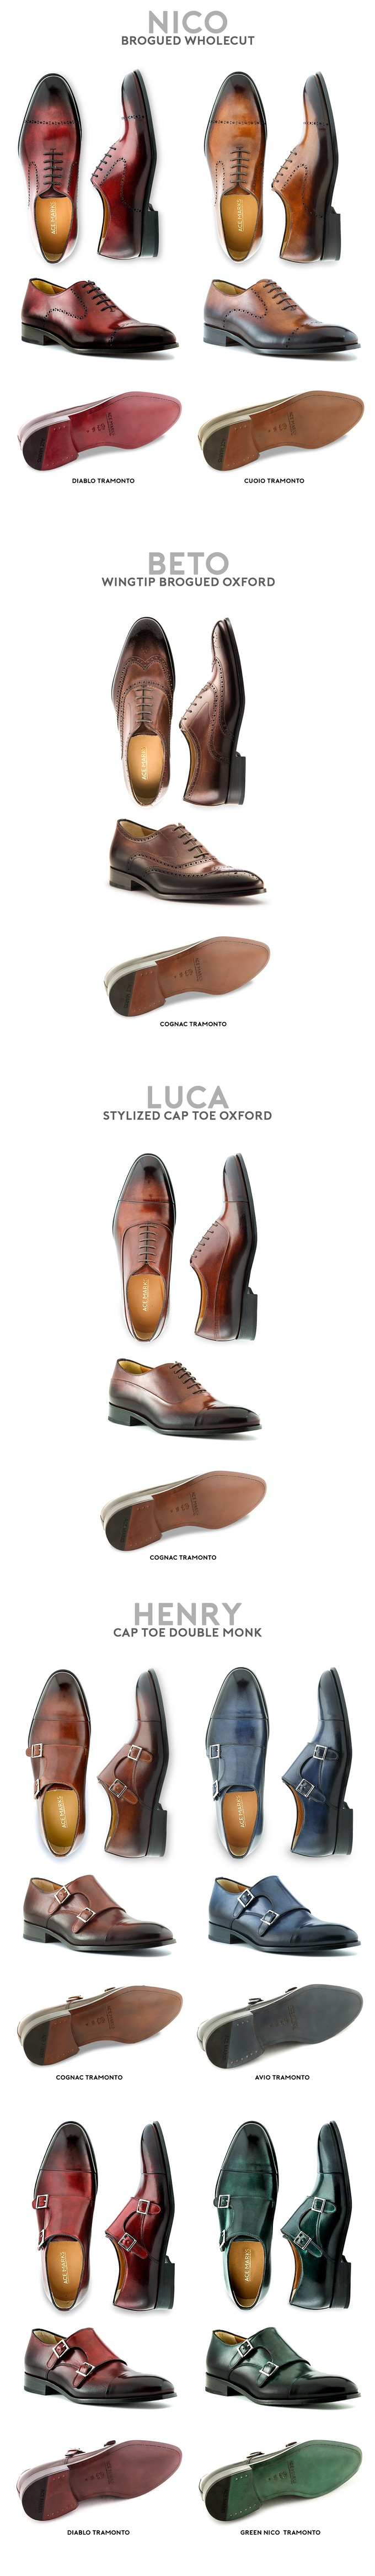 e35785853f1 Maybe you want to be a little more casual and a pair of oxfords would be  overkill. No matter how you make your statements